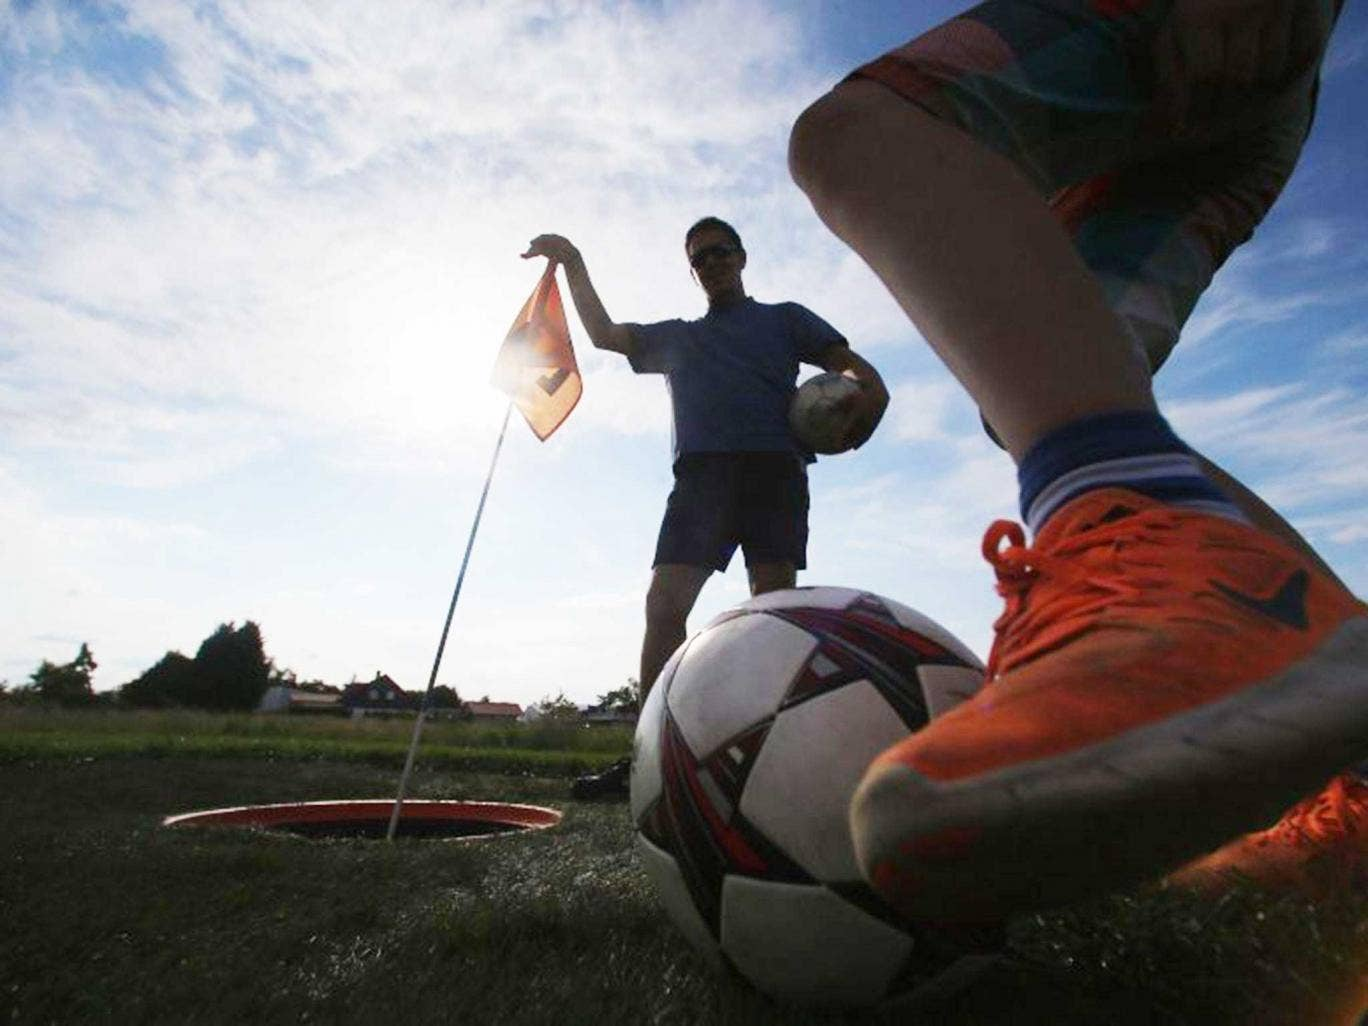 Kick-off: The US has almost 200 FootGolf courses across 37 states